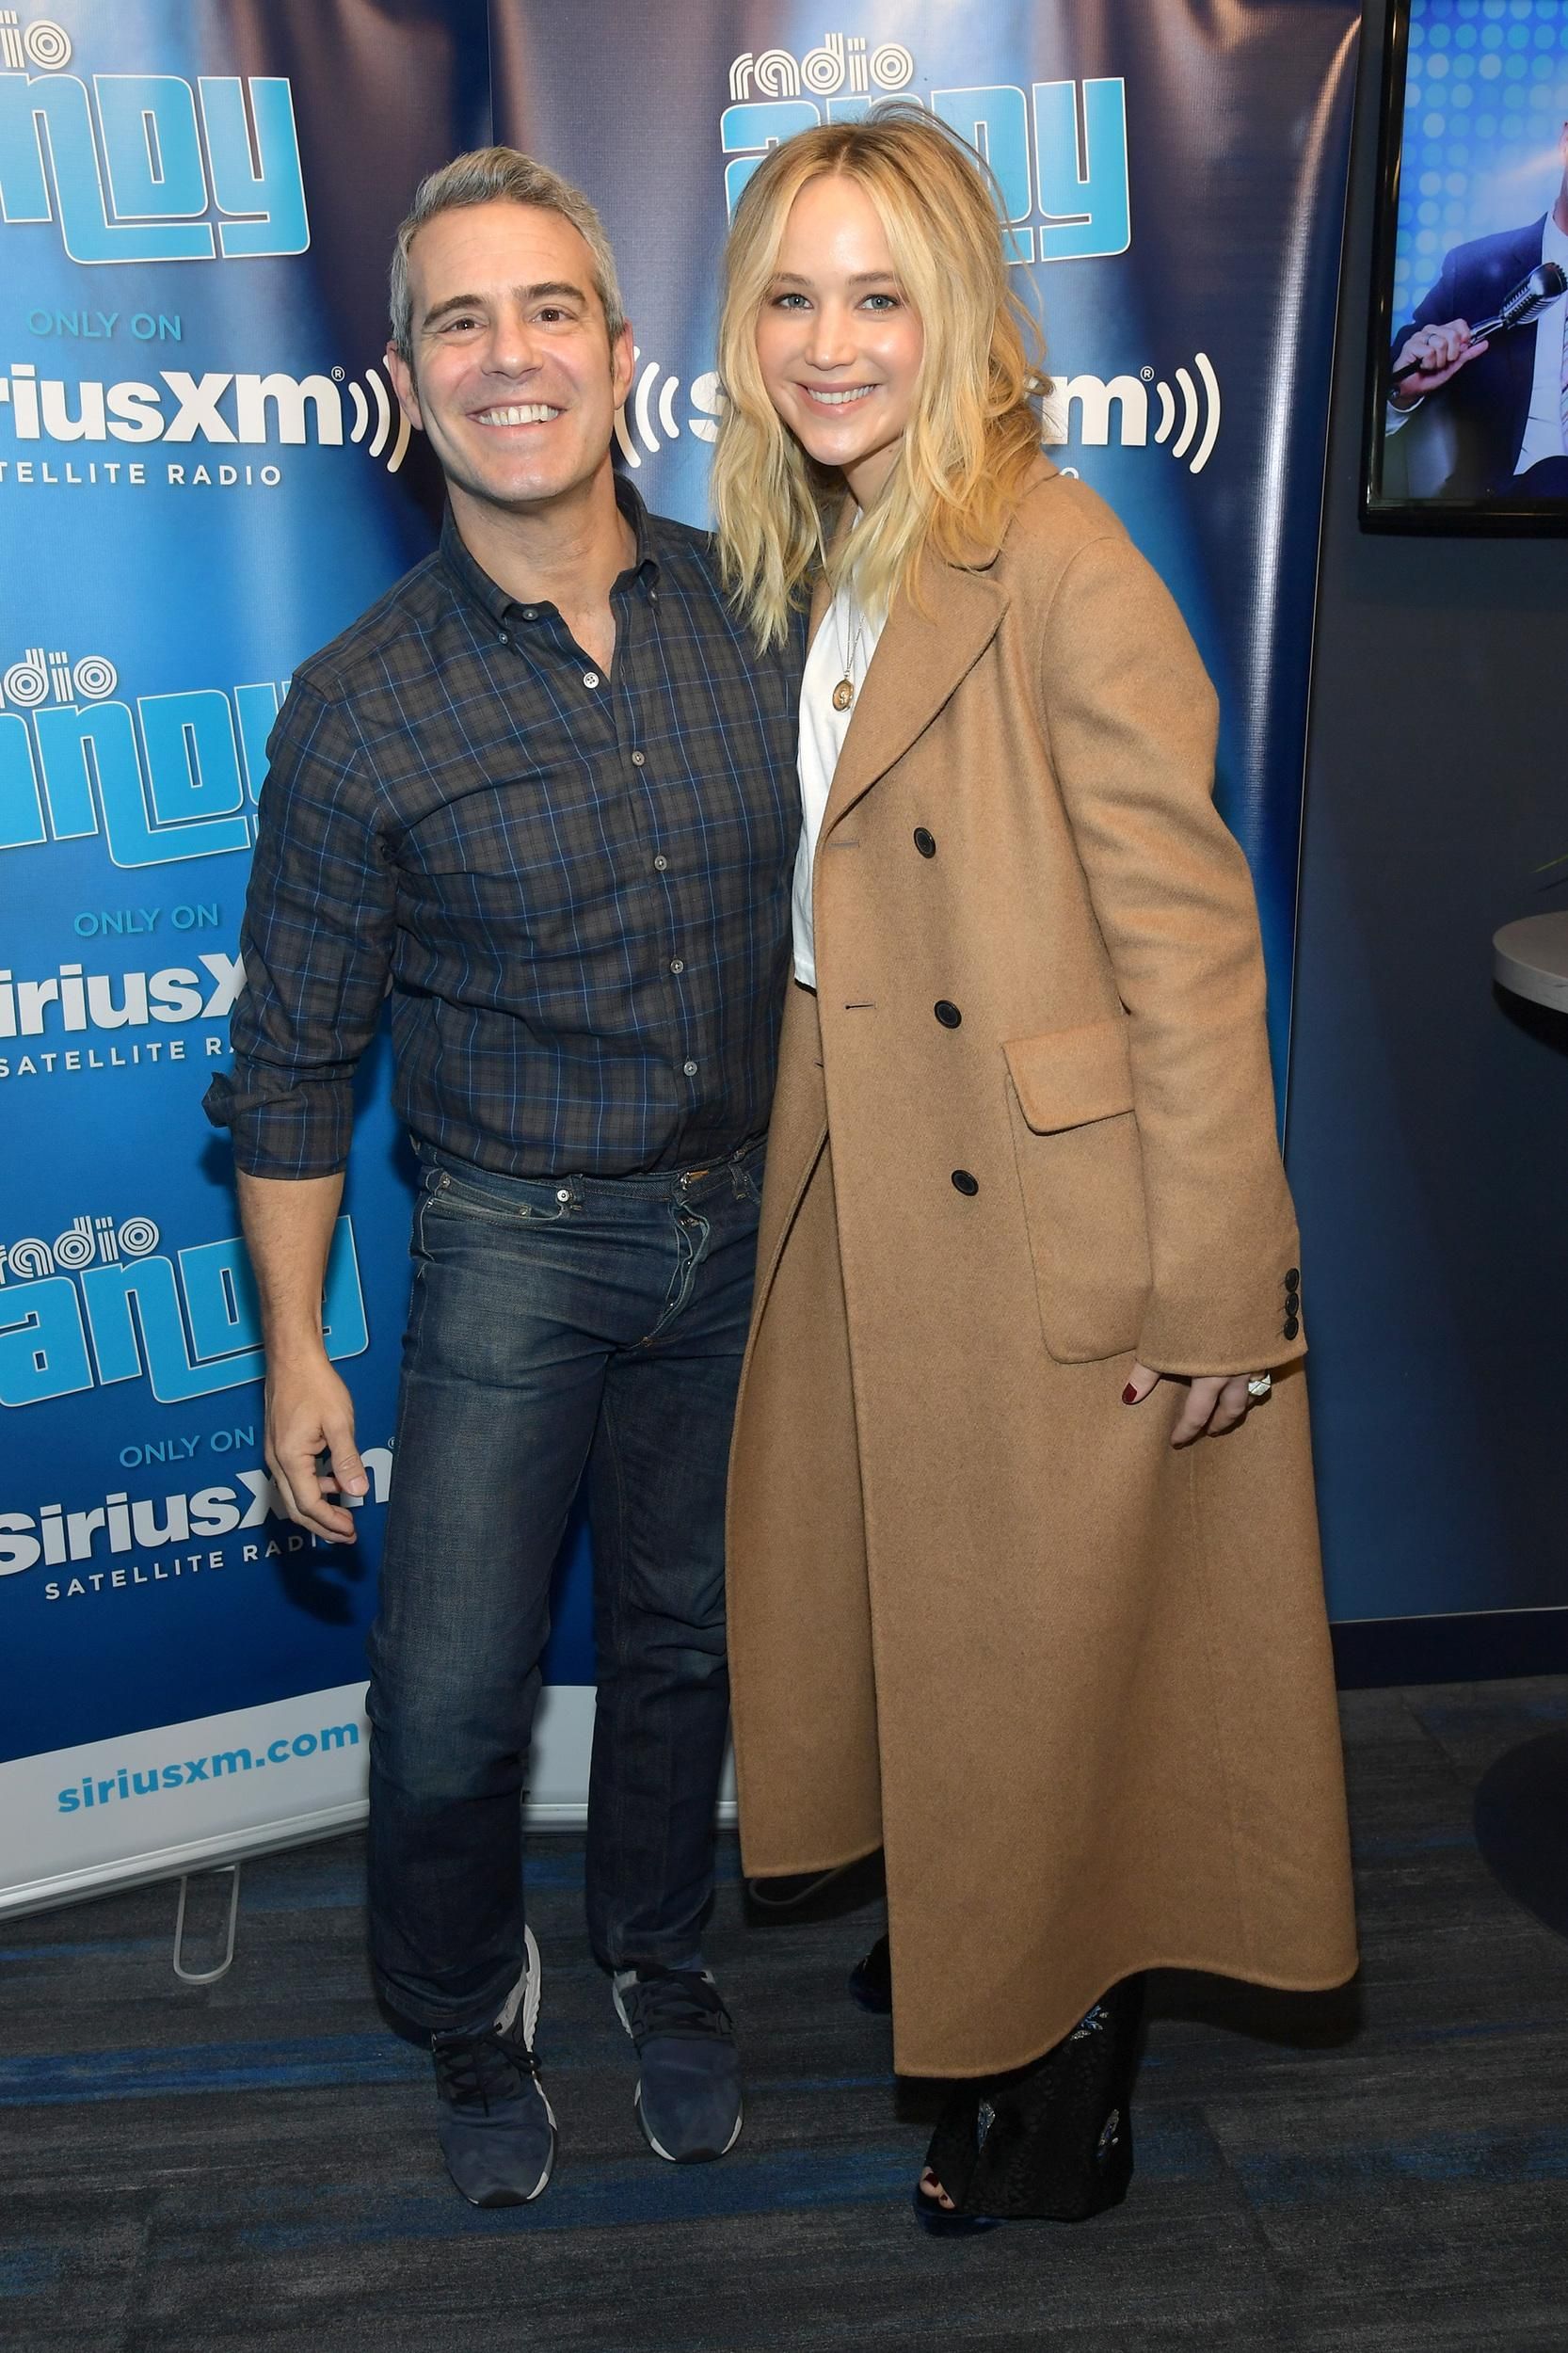 NEW YORK, NY - FEBRUARY 28:  Actress Jennifer Lawrence (R) visits 'Andy Cohen Live' hosted by Andy Cohen (L) on his exclusive SiriusXM channel Radio Andy at the SiriusXM Studios on February 28, 2018 in New York City.  (Photo by Ben Gabbe/Getty Images)